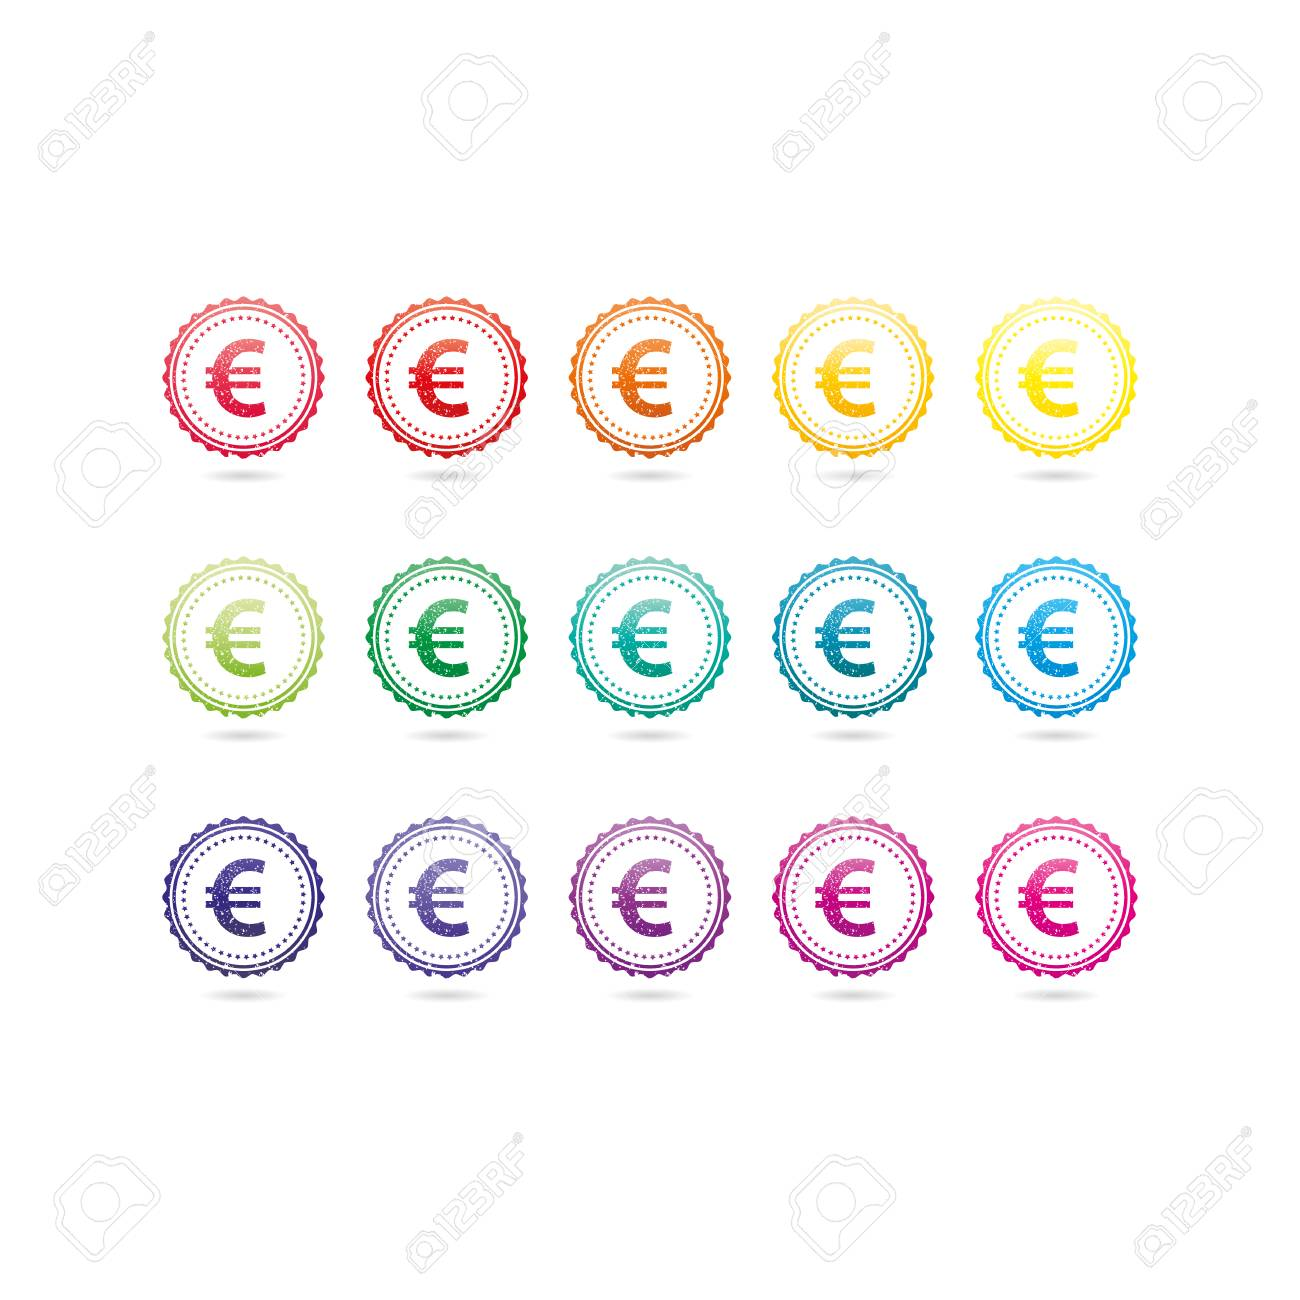 Euro currency grunge symbols. Colorful hipster style stamp badge signs. Vector illustration graphic template isolated on white background. - 46791373